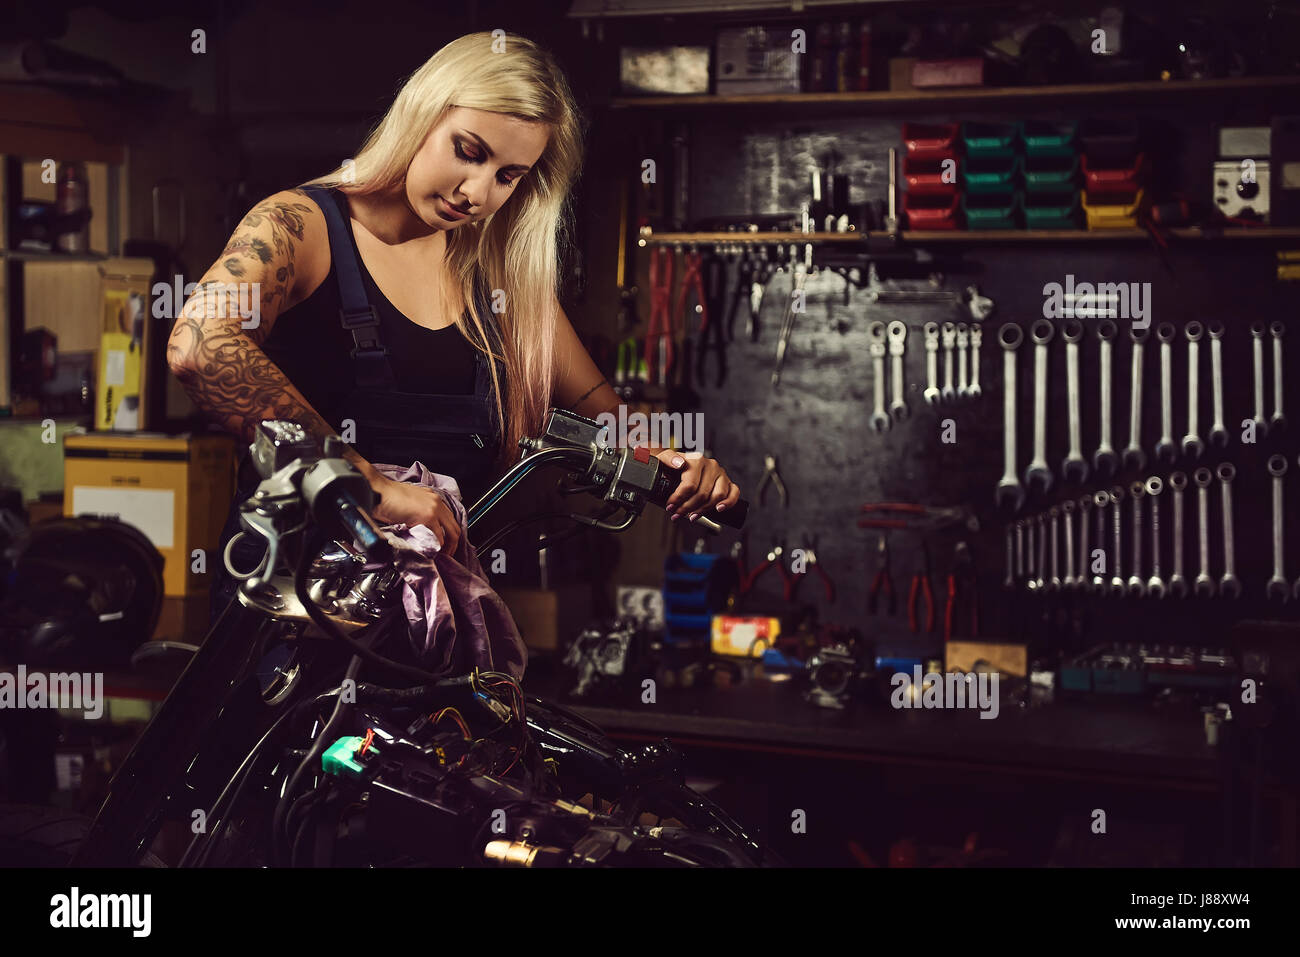 Blond woman mechanic working in a motorcycle workshop - Stock Image